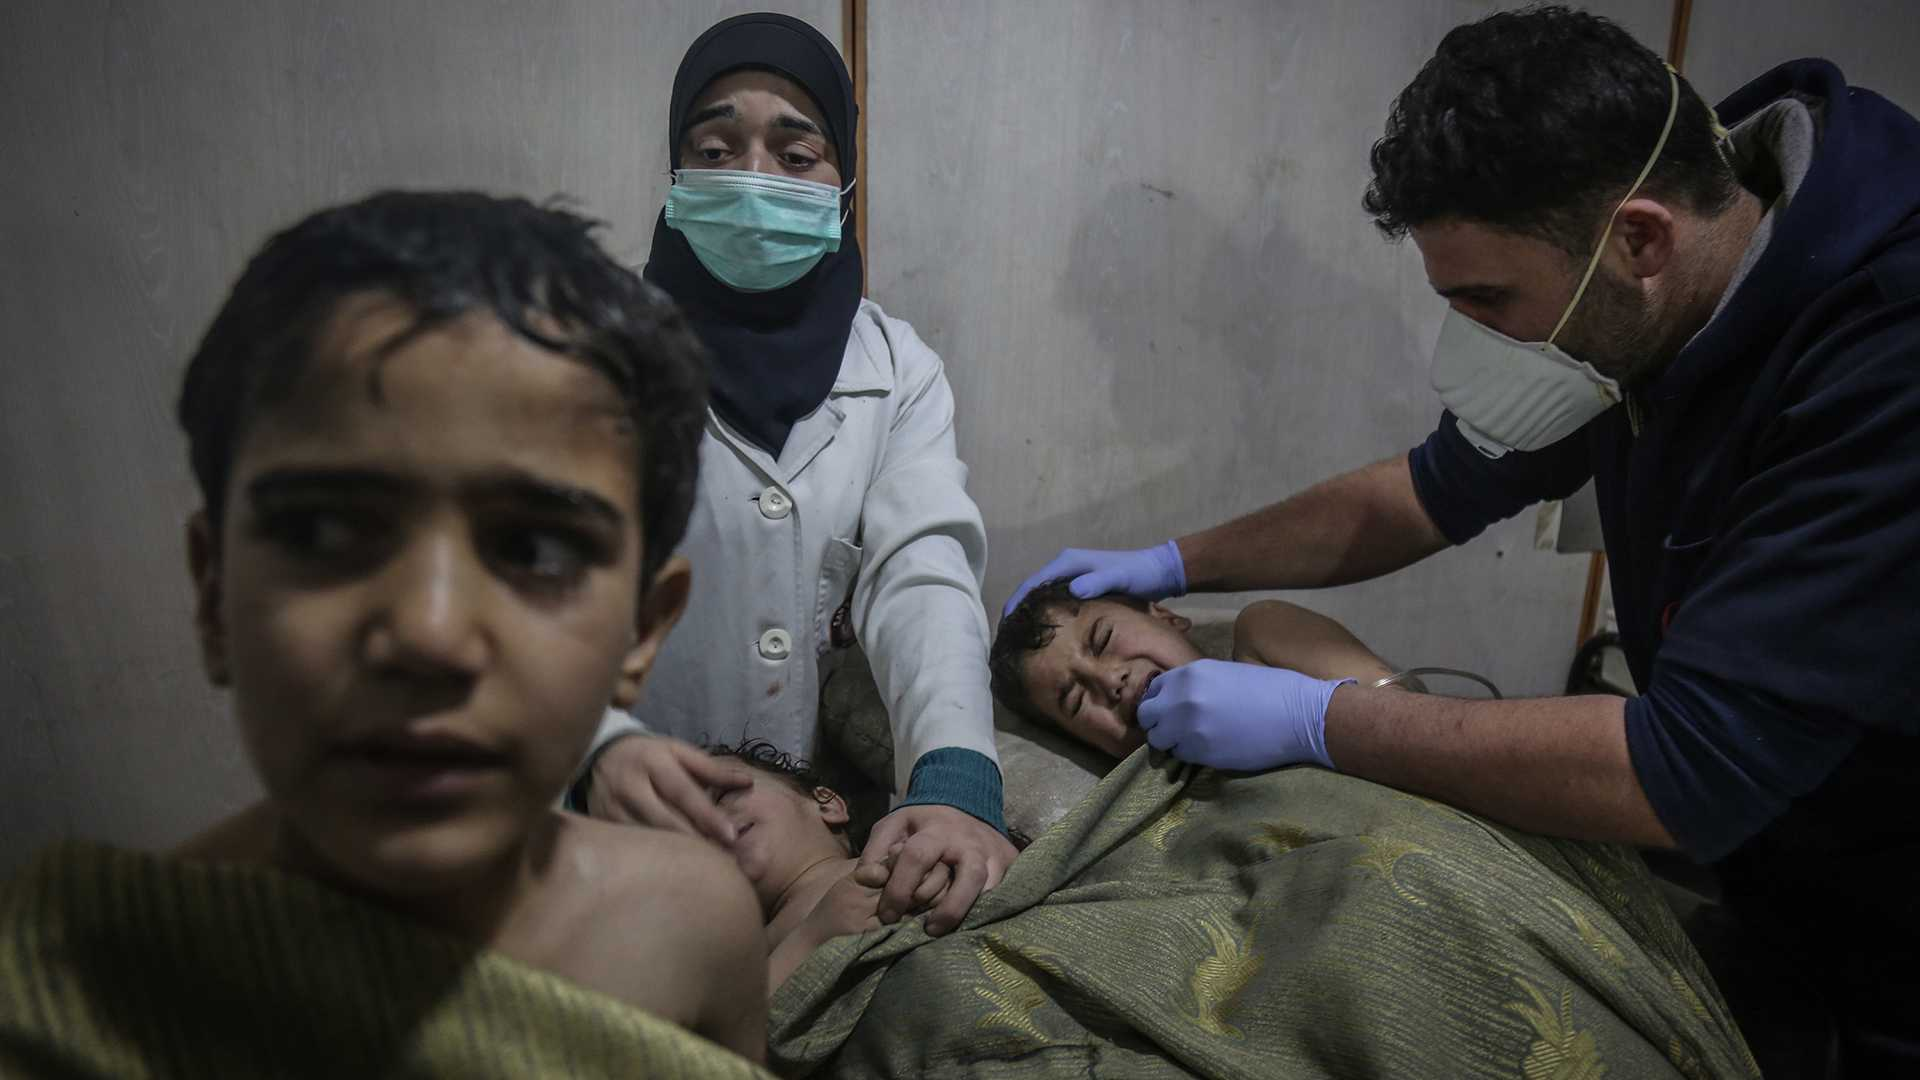 Damascus, Syria - Syrian children receive first aid after what local sources say was an attack by forces loyal to Syrian President Assad with chlorine gas on the town Hamuriya in a hospital in the rebel-held eastern Al-Ghouta province. (Anas Alkharboutli/DPA /Zuma Press/TNS)